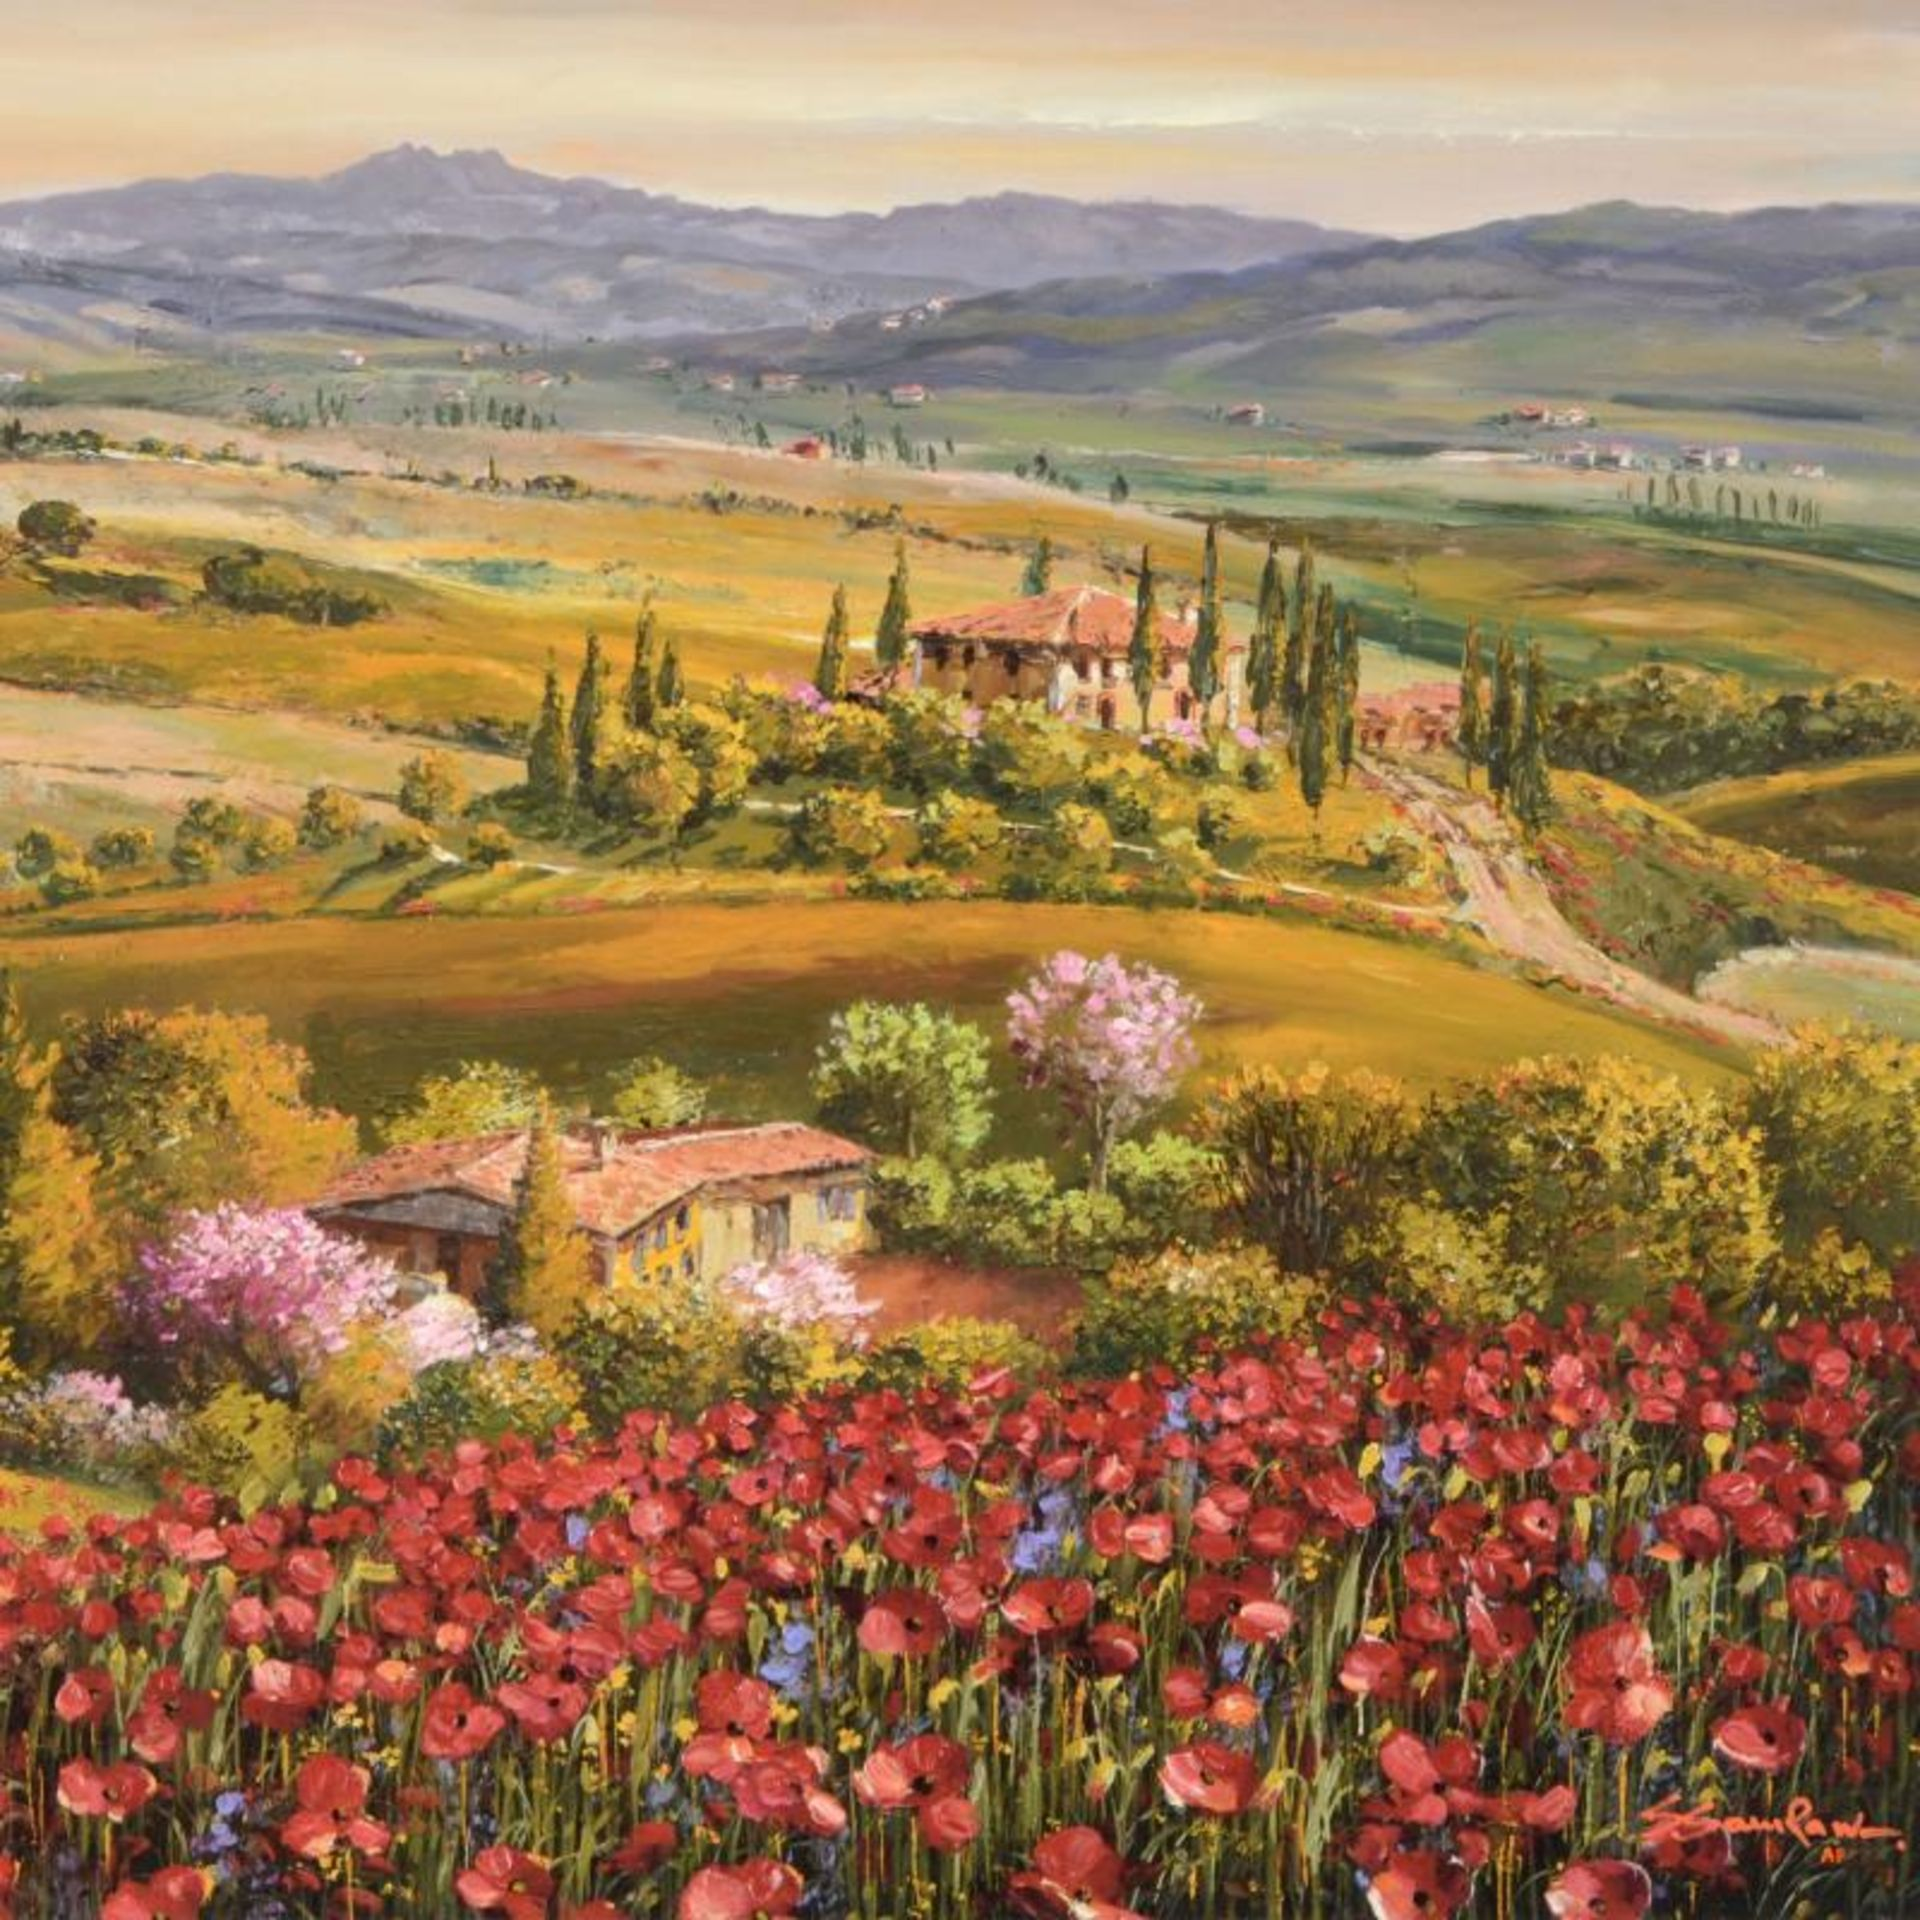 Tuscany Red Poppies by Park, S. Sam - Image 2 of 2